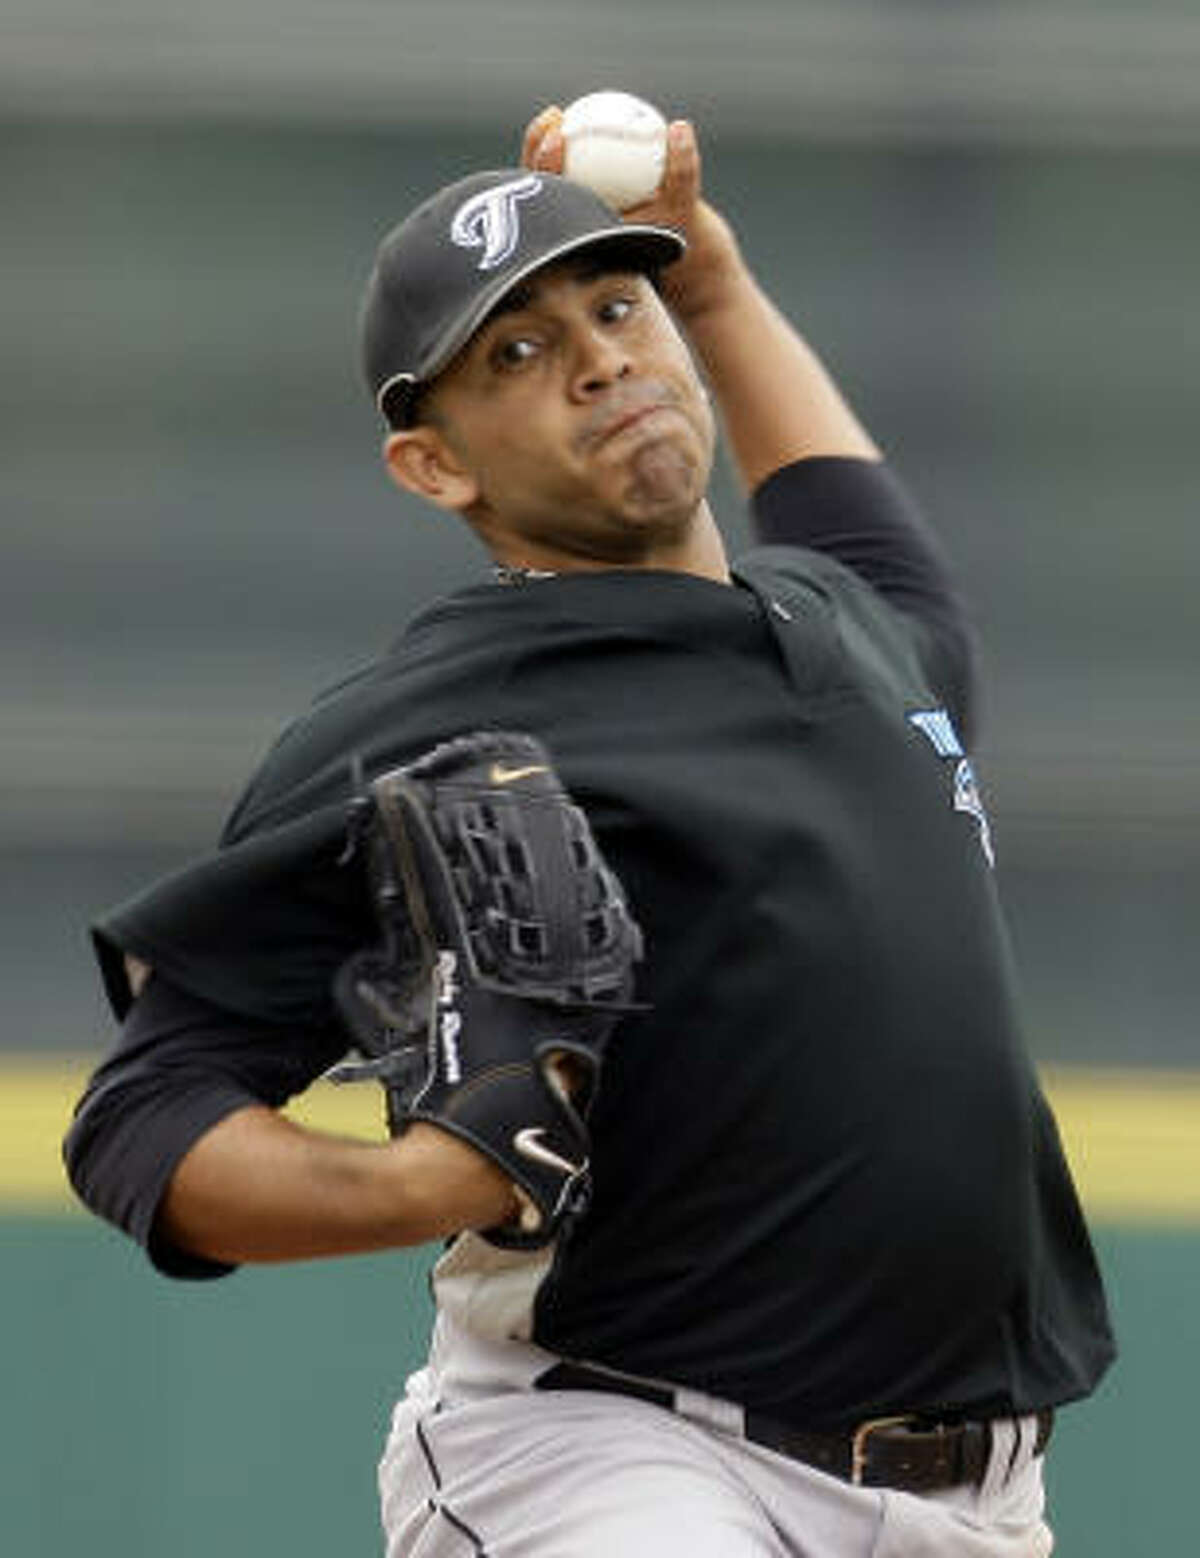 Ricky Romero started for the Blue Jays. Romero had six strikeouts and held the Astros to two runs in seven innings.